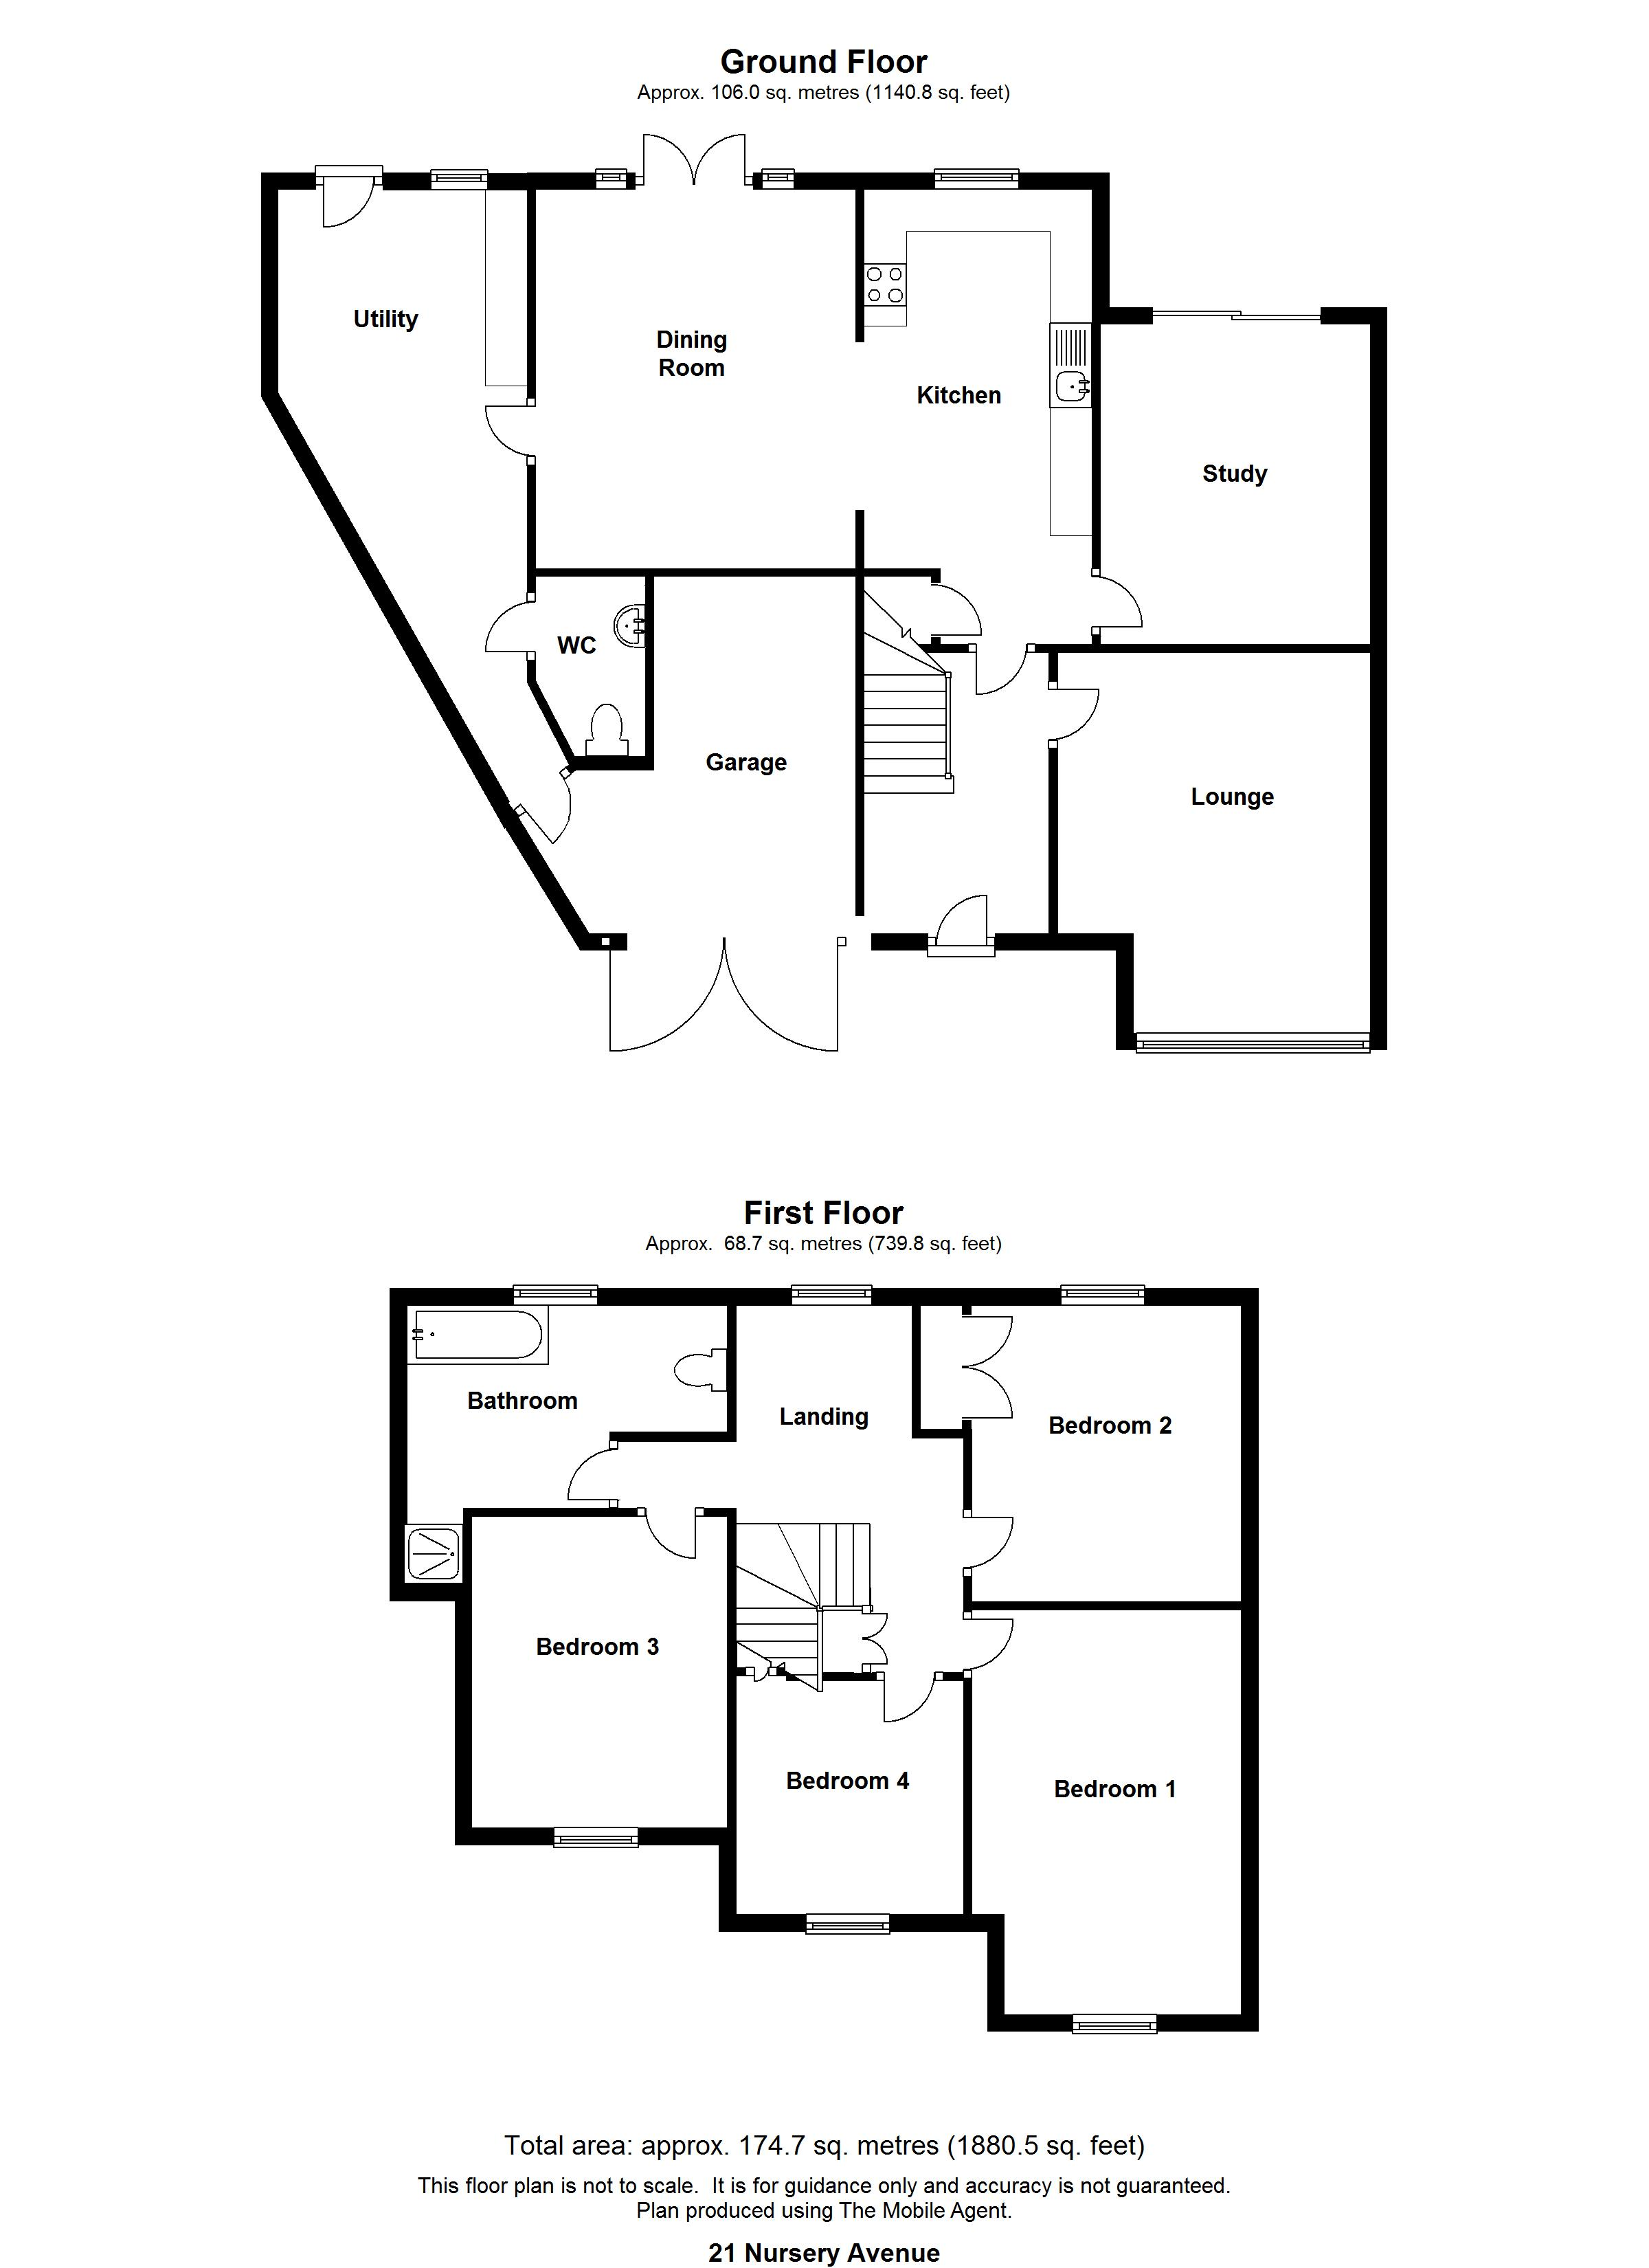 Floorplans For Nursery Avenue, Maidstone